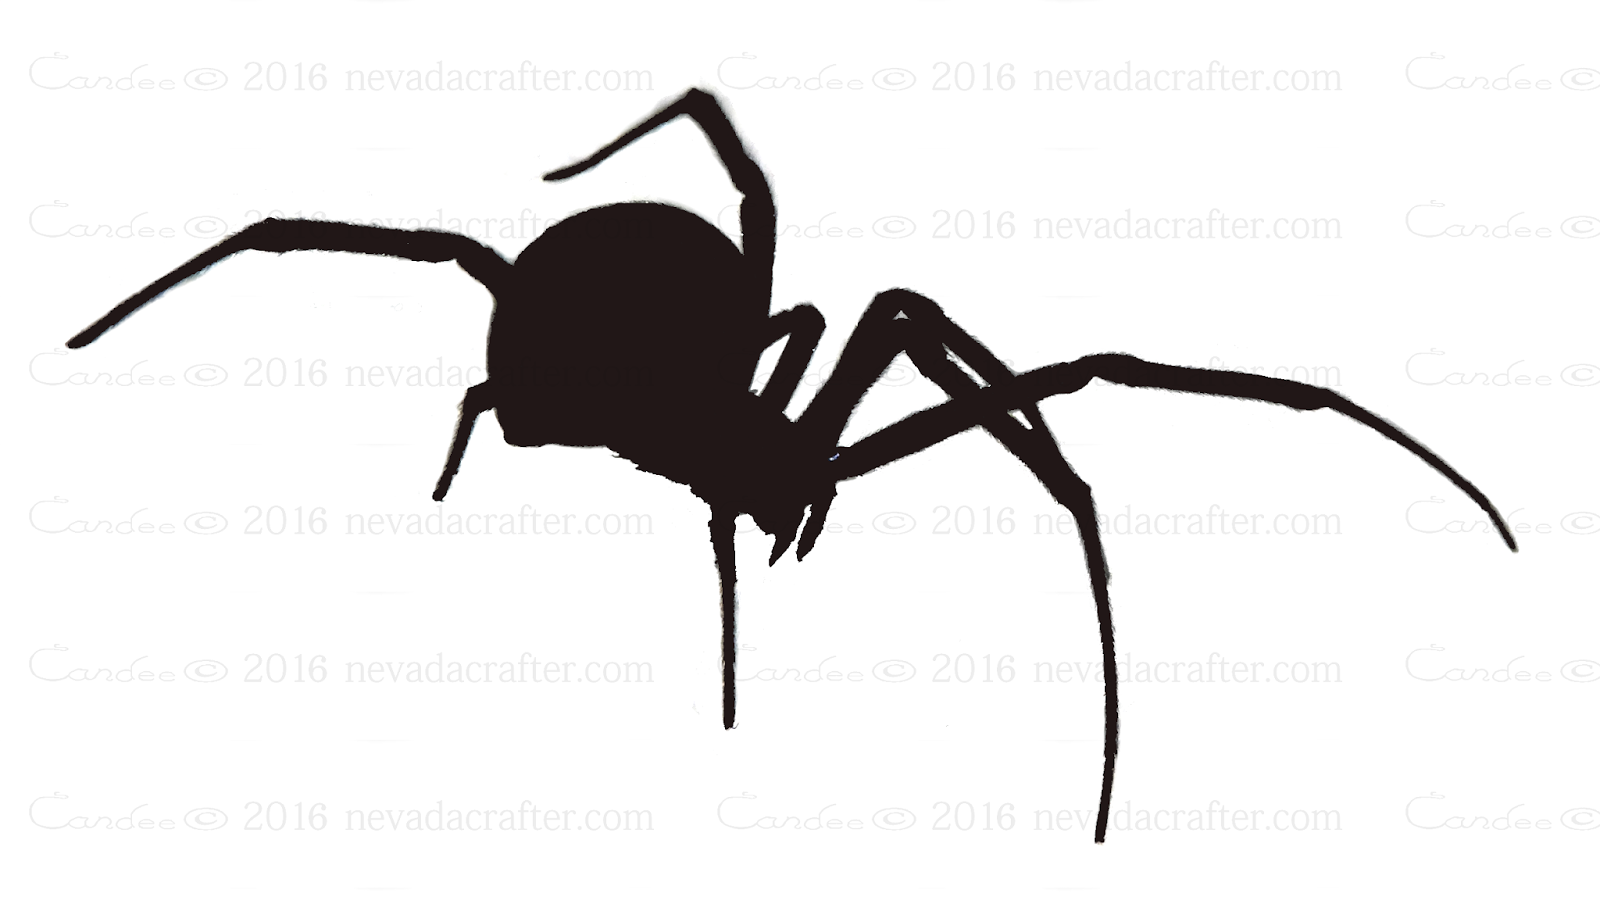 black widow spider silhouette - photo #1